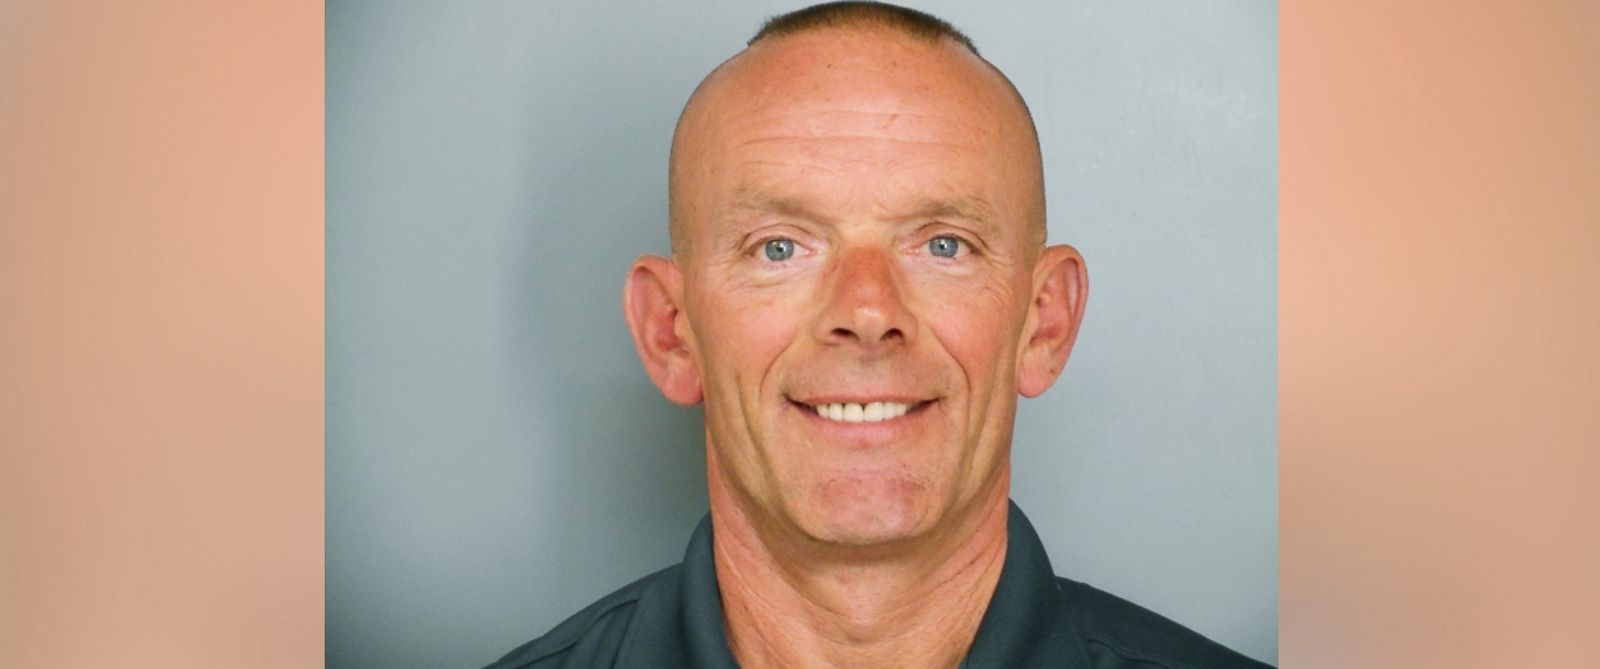 PHOTO: This undated file photo provided by the Fox Lake Police Department shows Lt. Charles Joseph Gliniewicz.